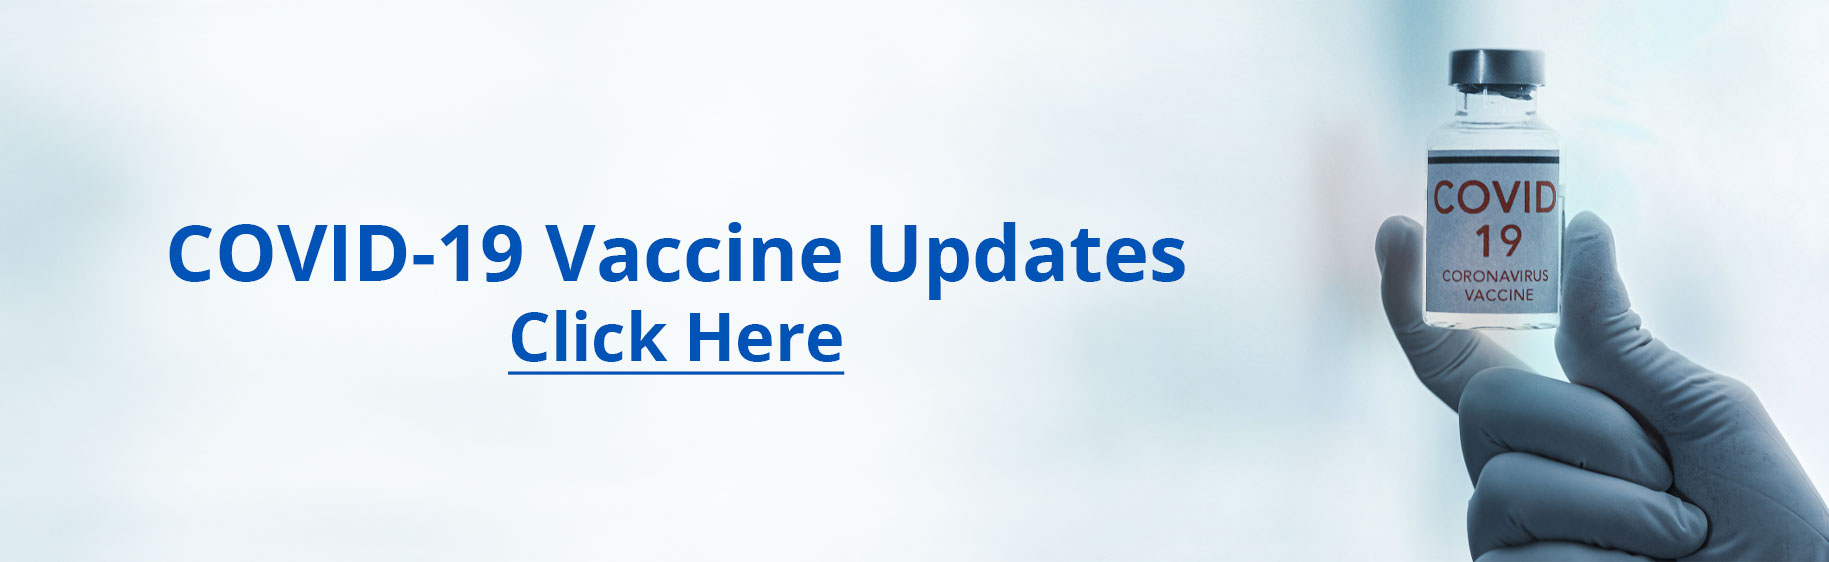 COVID-19 Vaccine Updates   Click Here